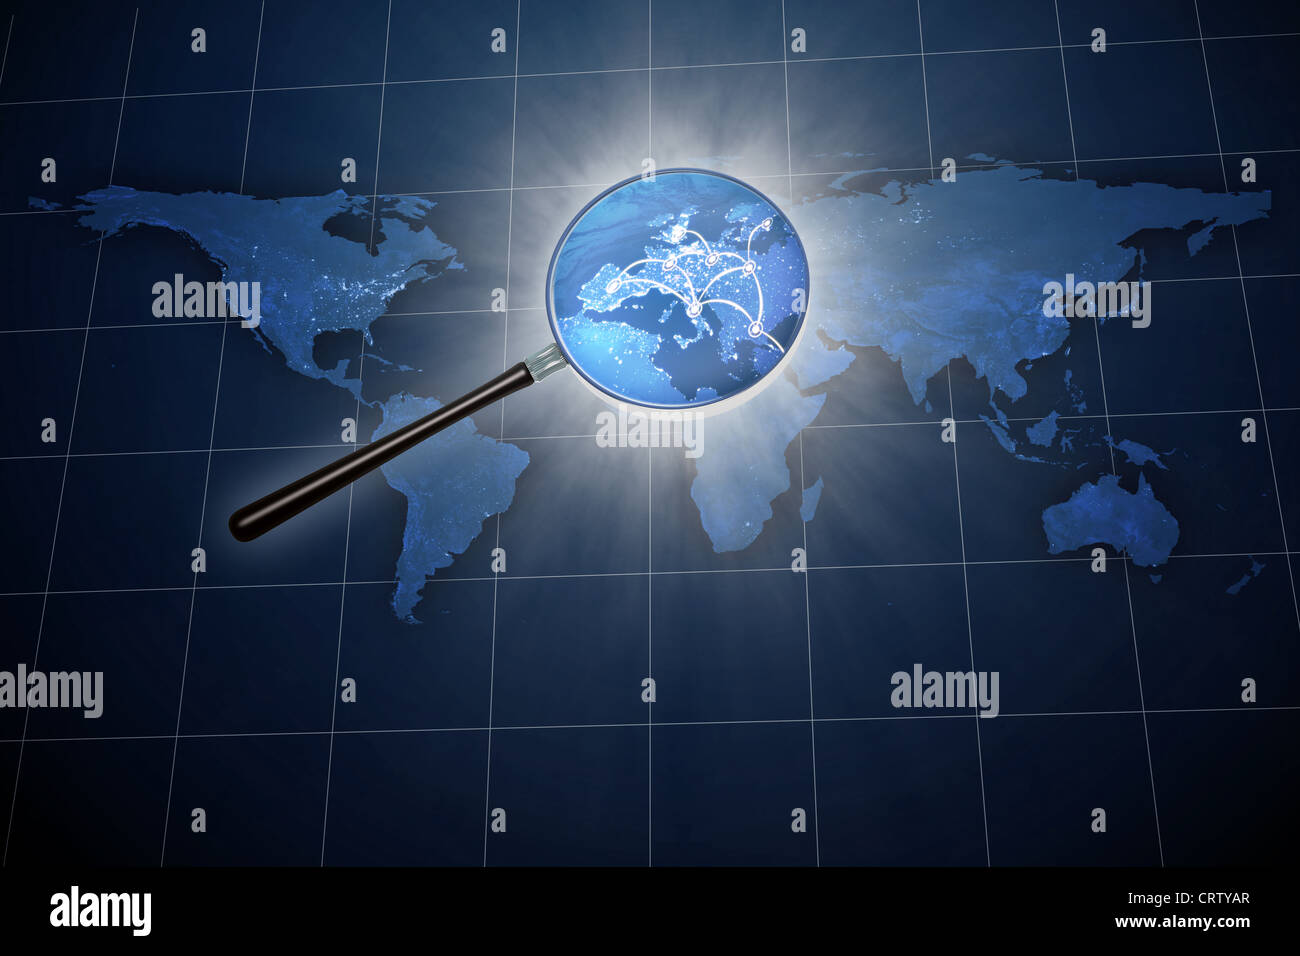 Magnifying glass over the world map - Europe zoom - Stock Image